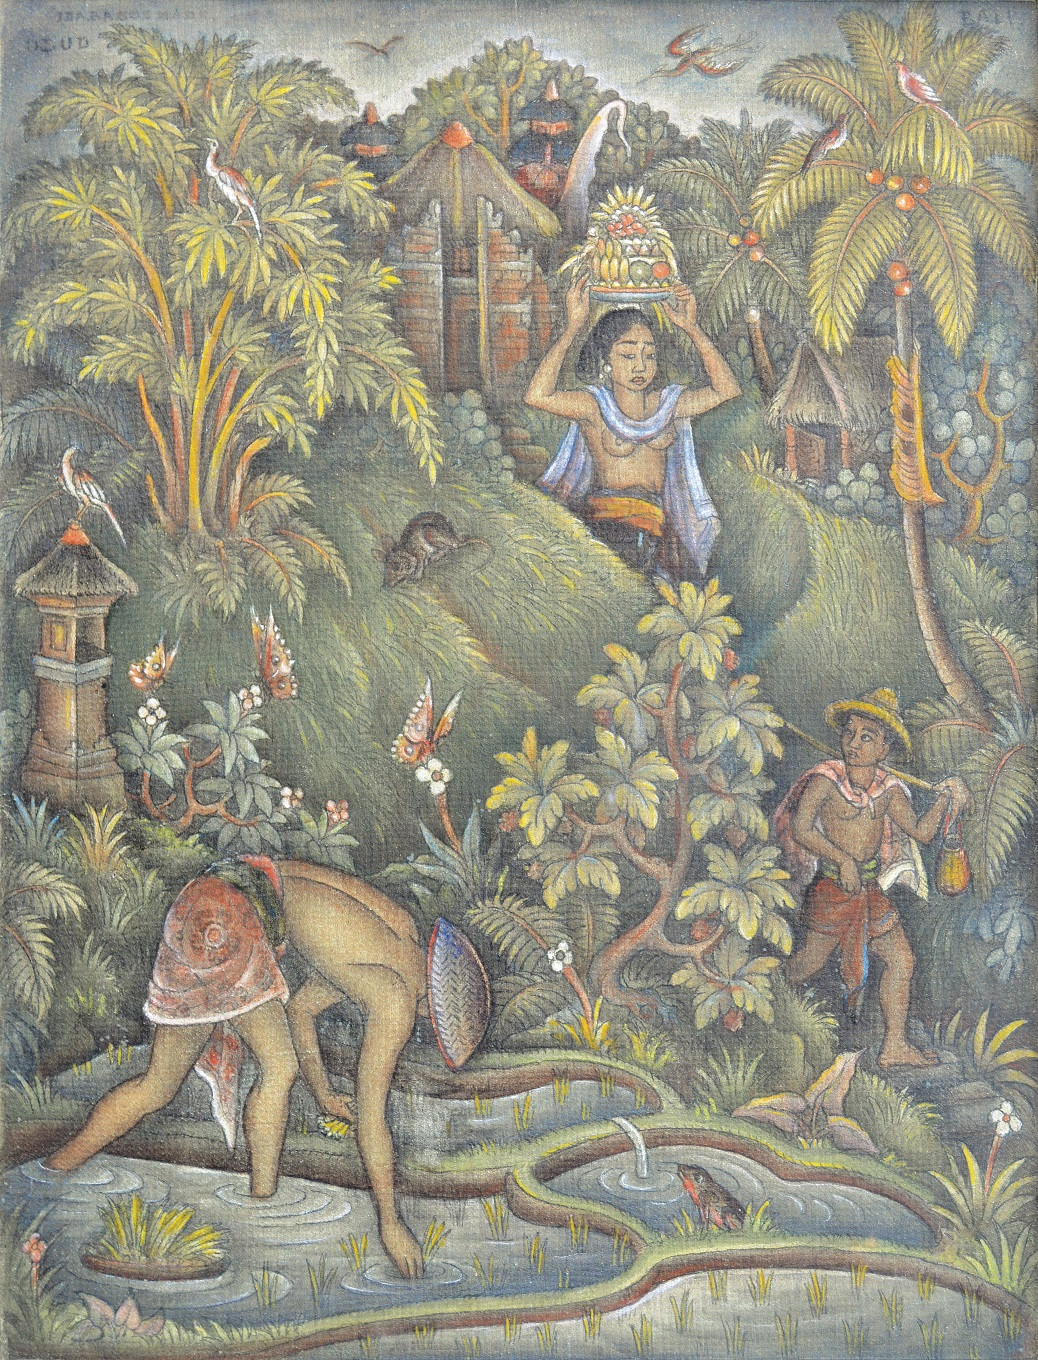 Lot 753: 'Woman with Offering at the Sawah Scene' by Ida Bagus Made Poleng